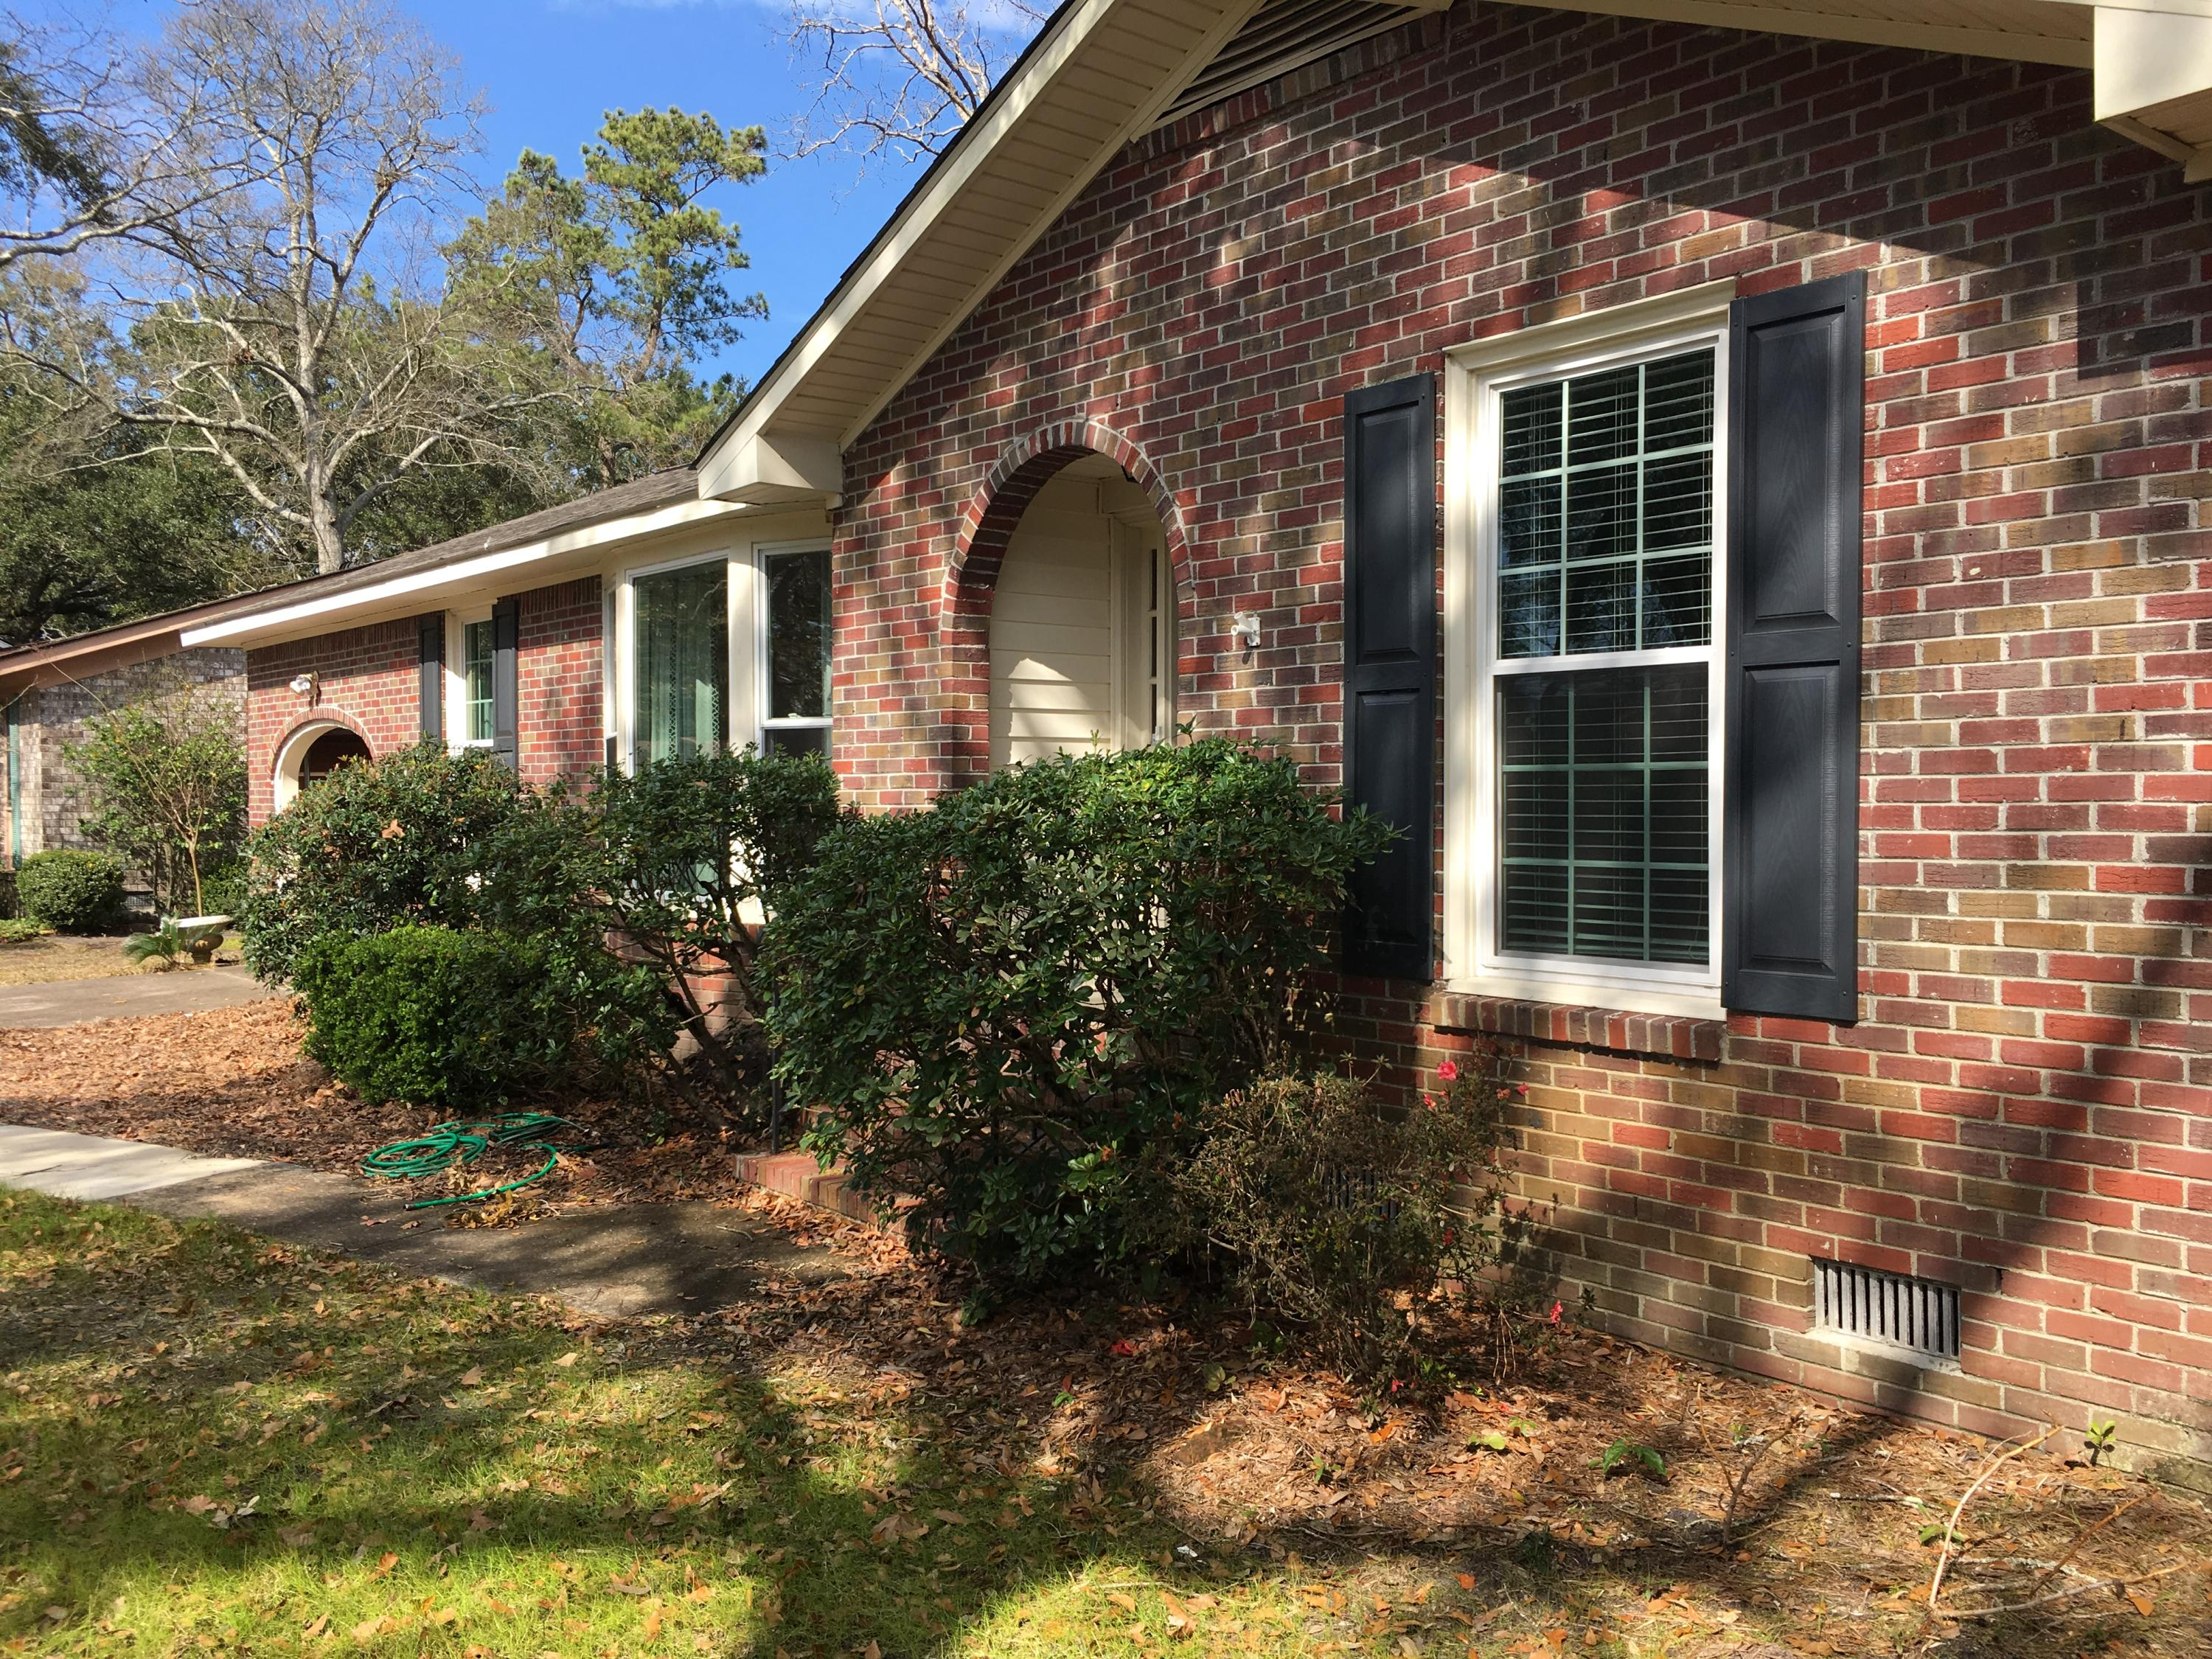 Parish Place Homes For Sale - 850 O'Sullivan, Mount Pleasant, SC - 5